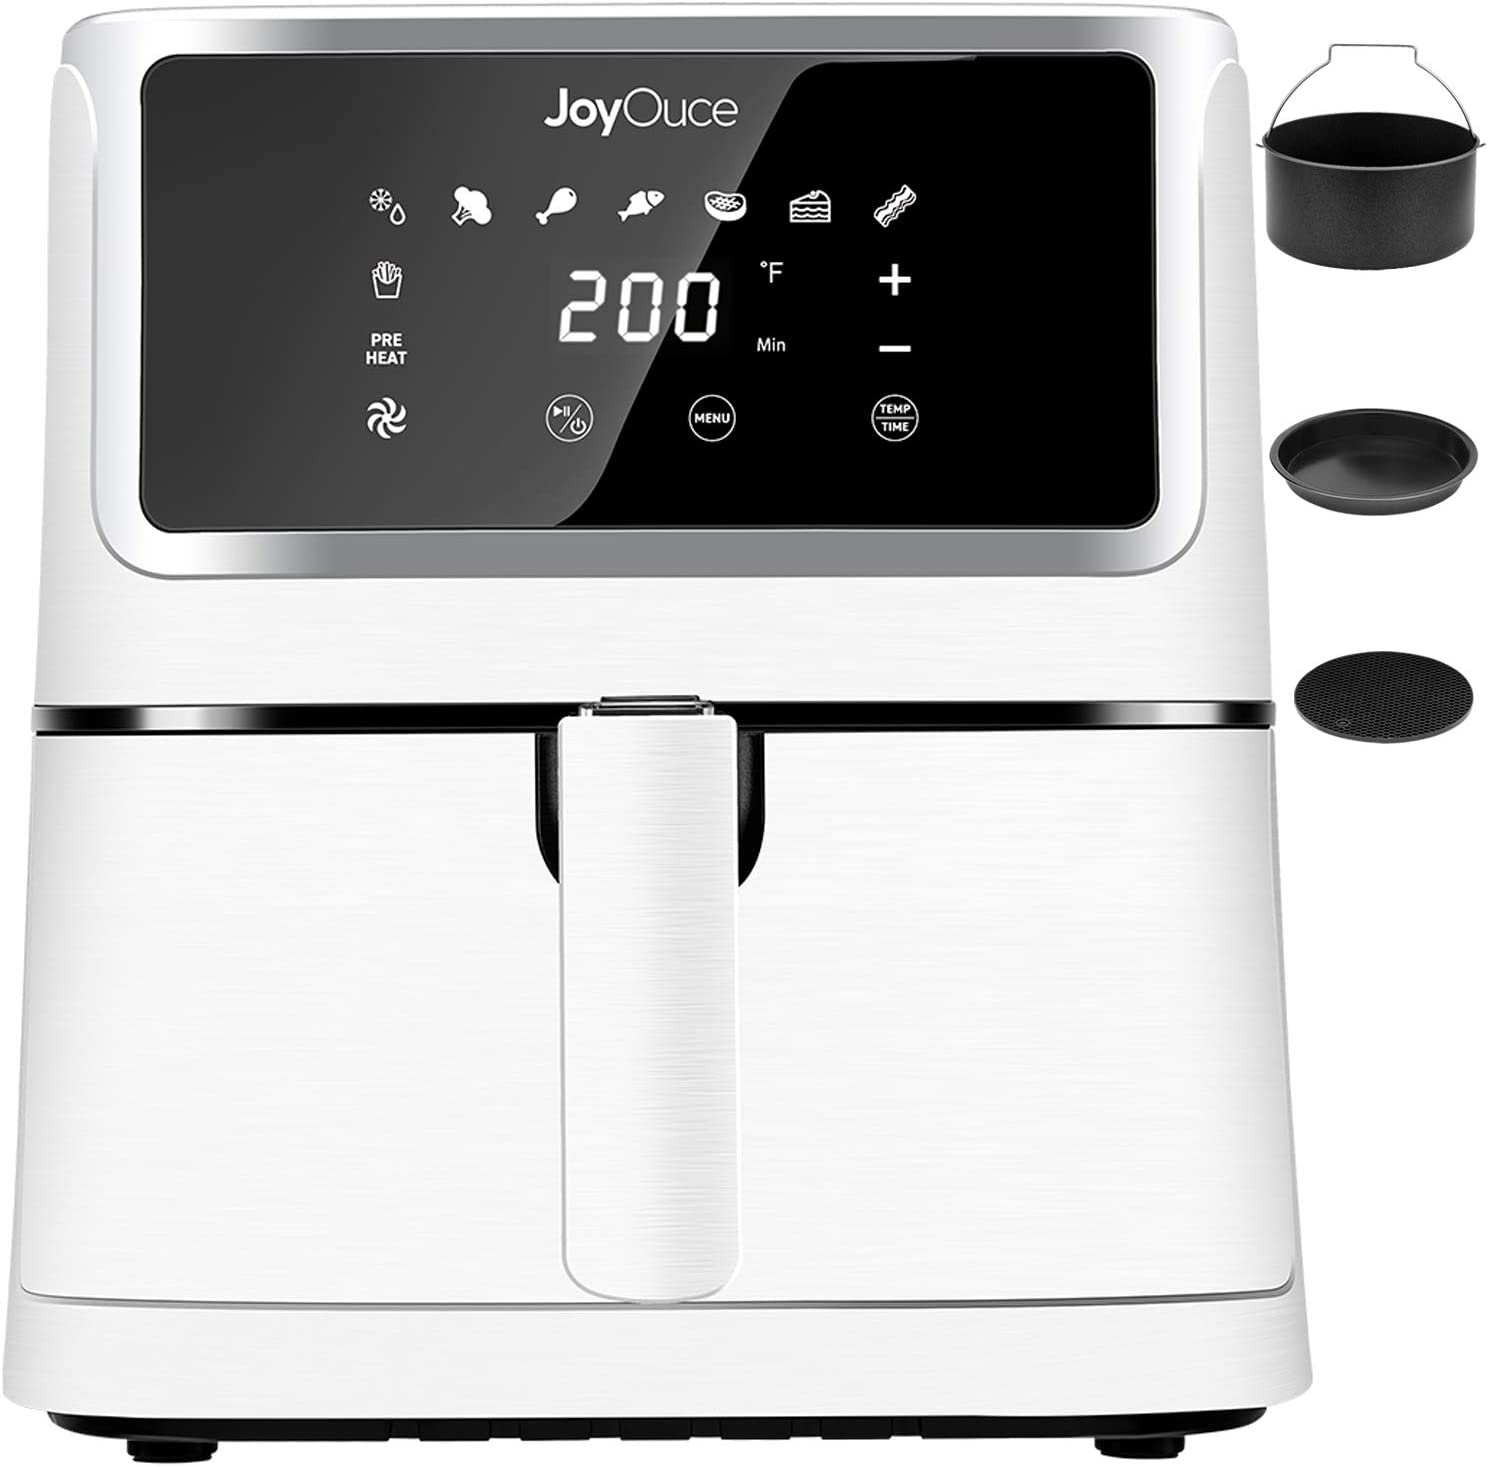 JOYOUCE Air Fryer XL with 3 Extra Air Fryer Accessories,5.8 QT Large Air Fryer Oven Smart Touch Screen with 8 Presets Air Fryer Combo for Roast/Bake/Grill Power 1700W